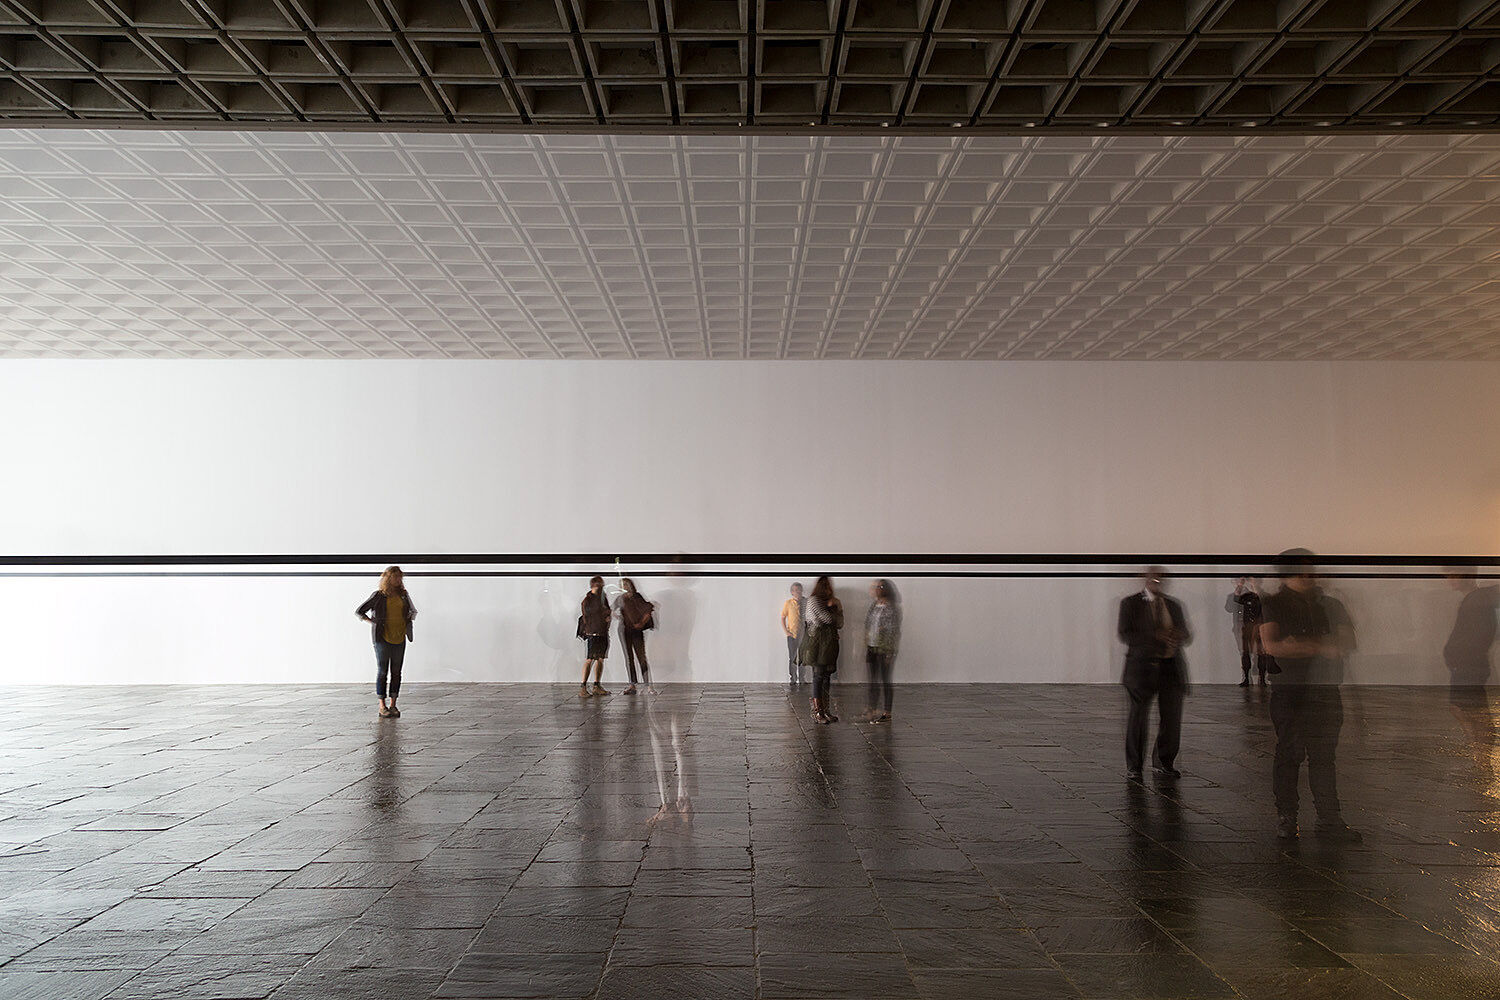 Blurred image of people standing in a gallery.